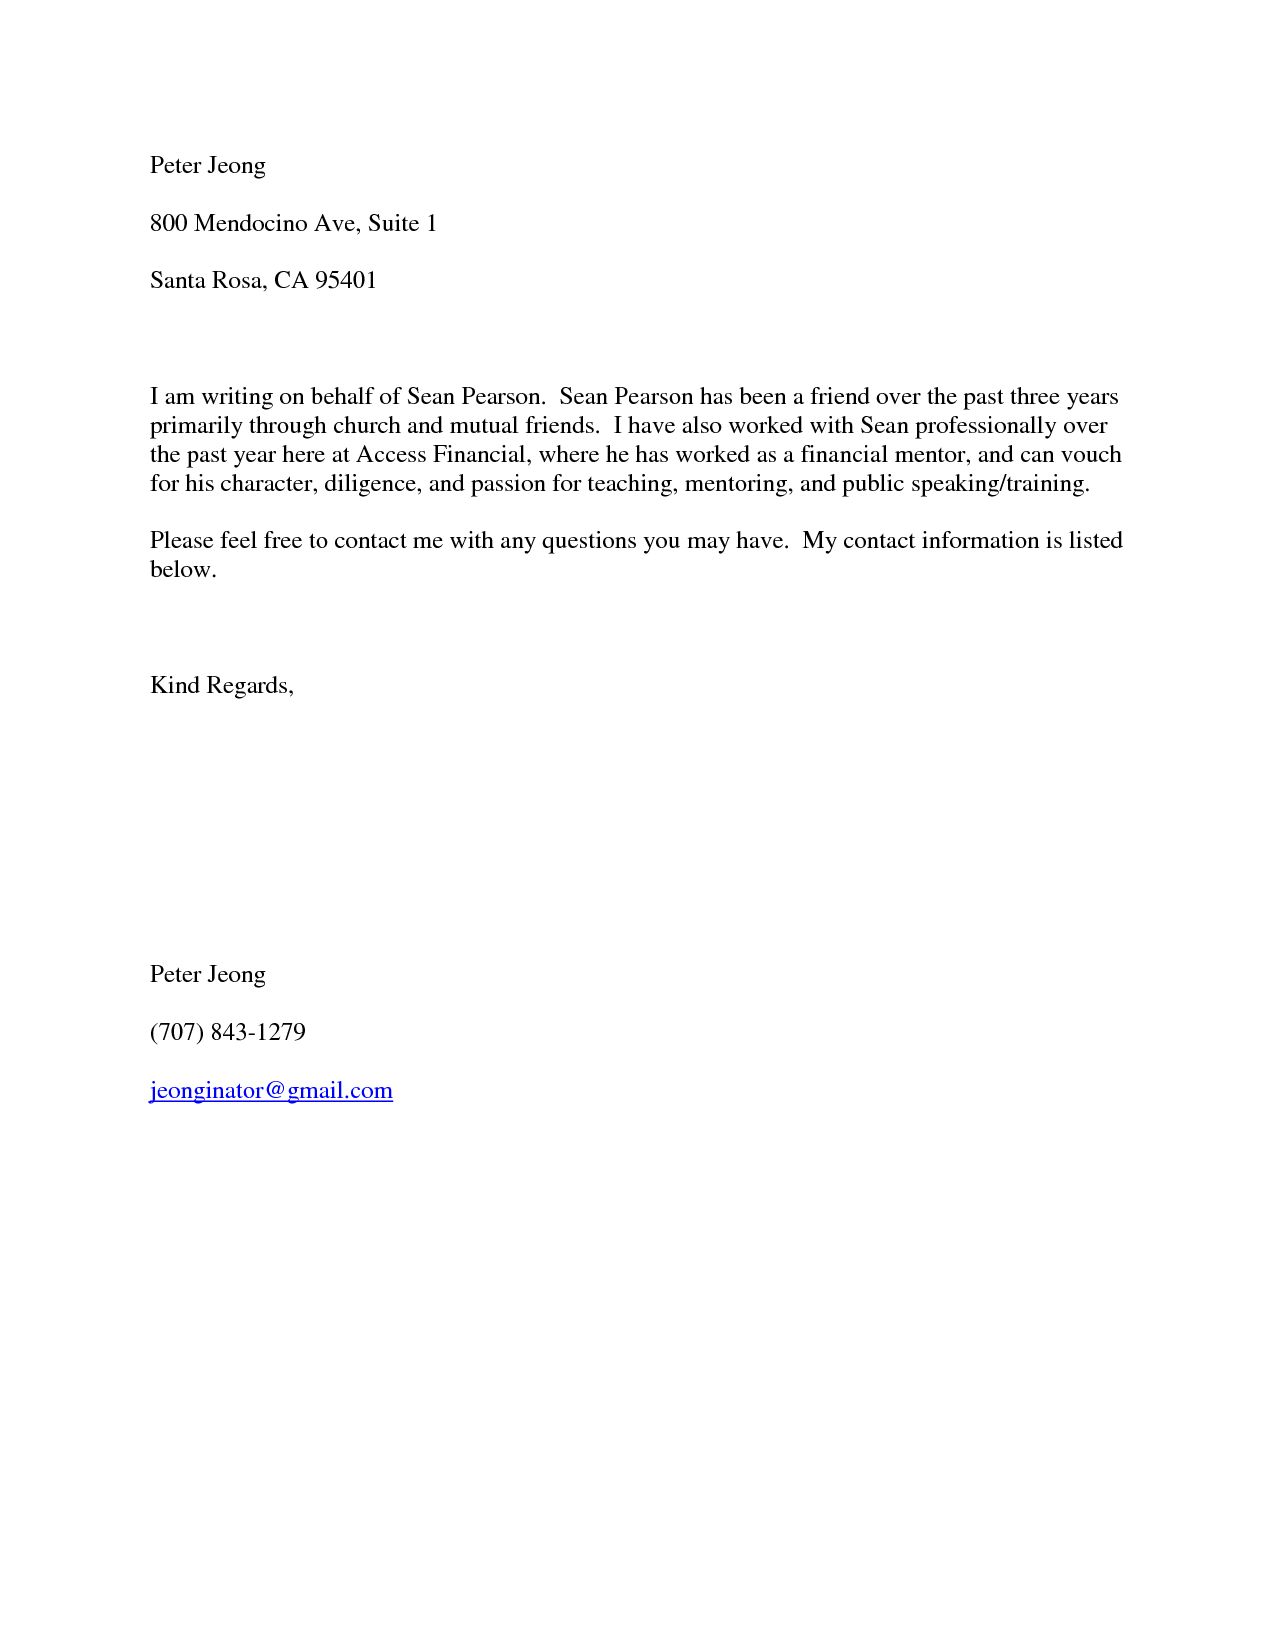 Letter Of Recommendation Template Pdf - Short Character Reference Letter Choice Image Letter format formal